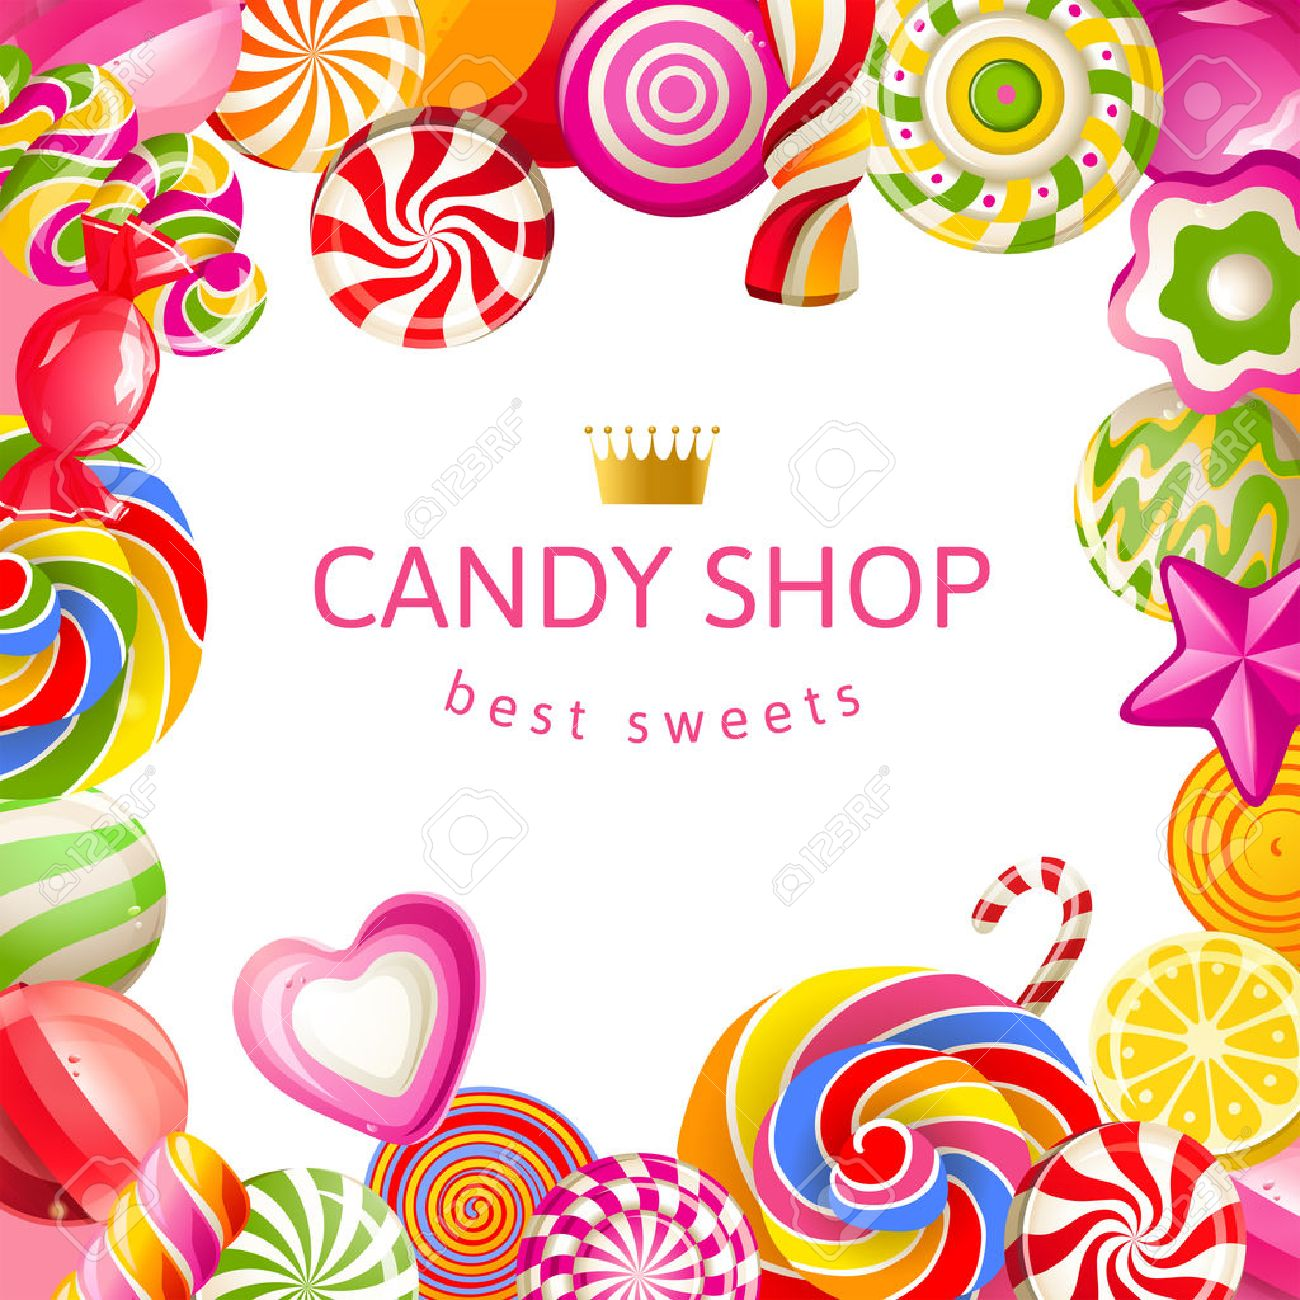 Bright background with candies - 26768606